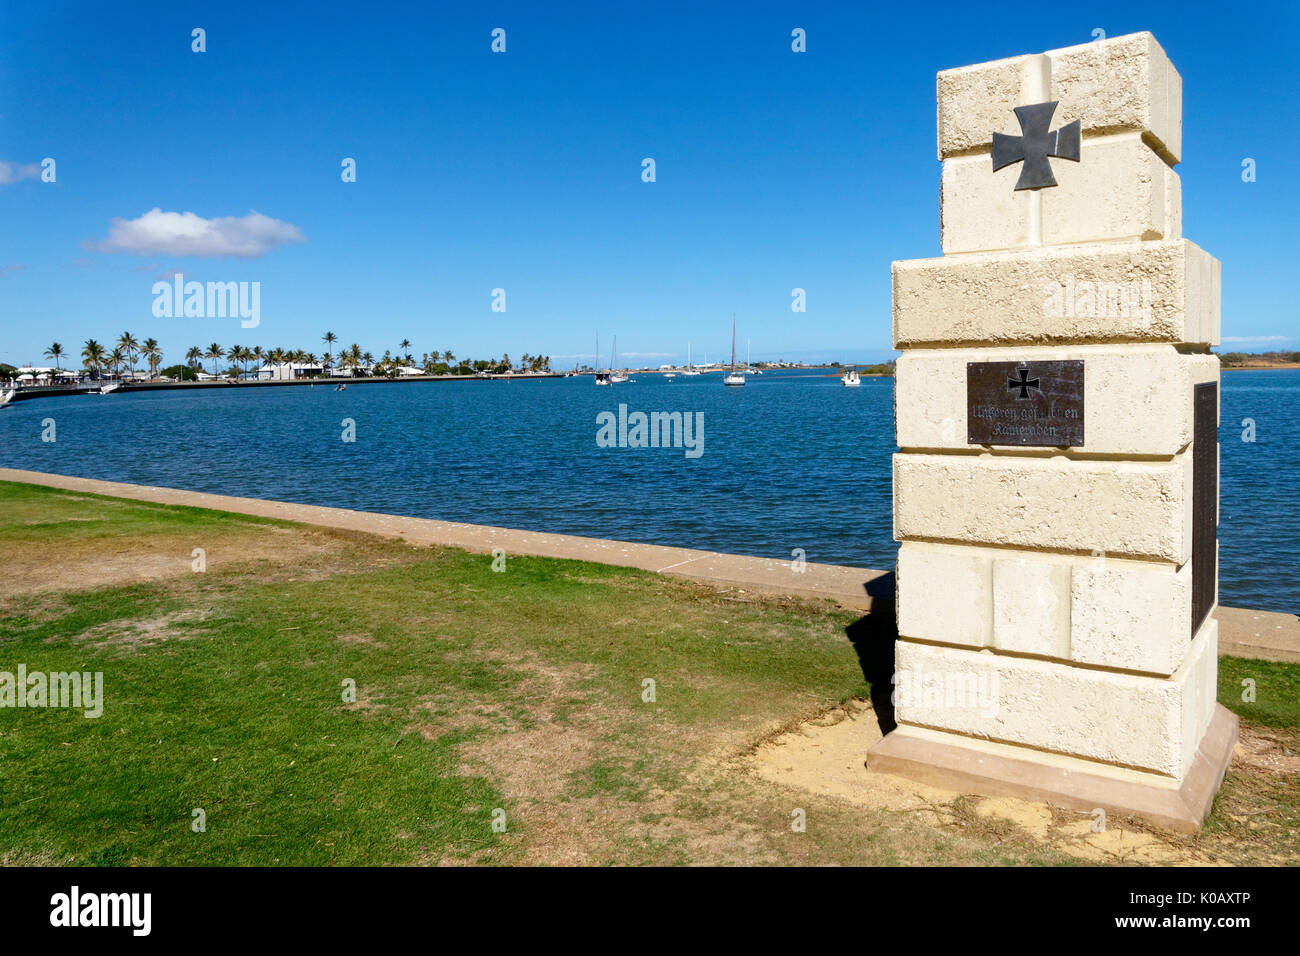 Memorial for the sailors of the HSK Kormoran, Carnarvon, Gascoyne, Western Australia - Stock Image